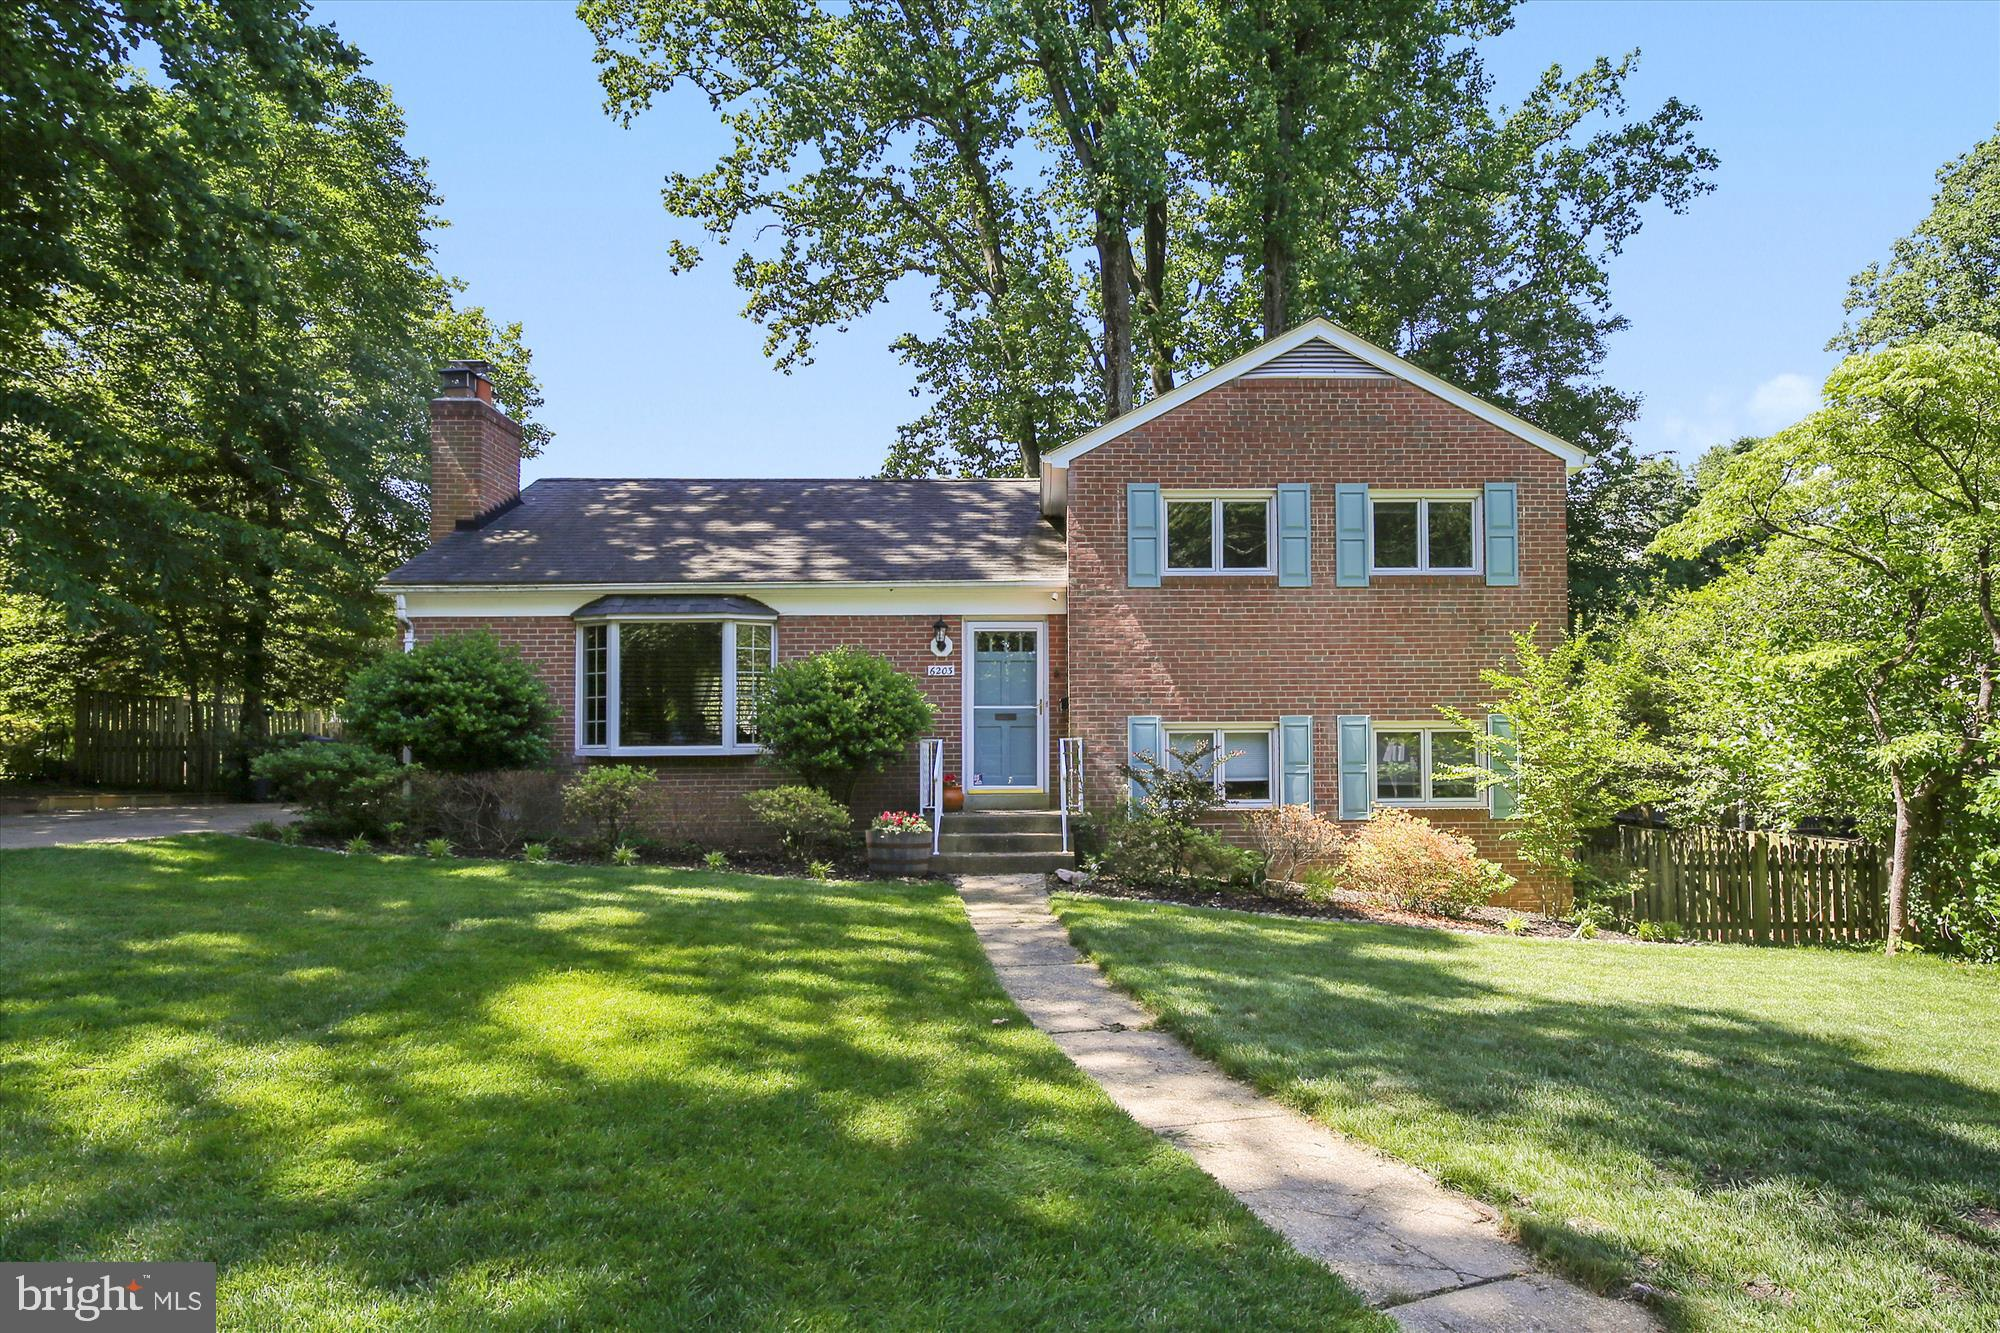 Falls Church is calling your name with this brick split-level home with over 2,100 sq. ft. of space